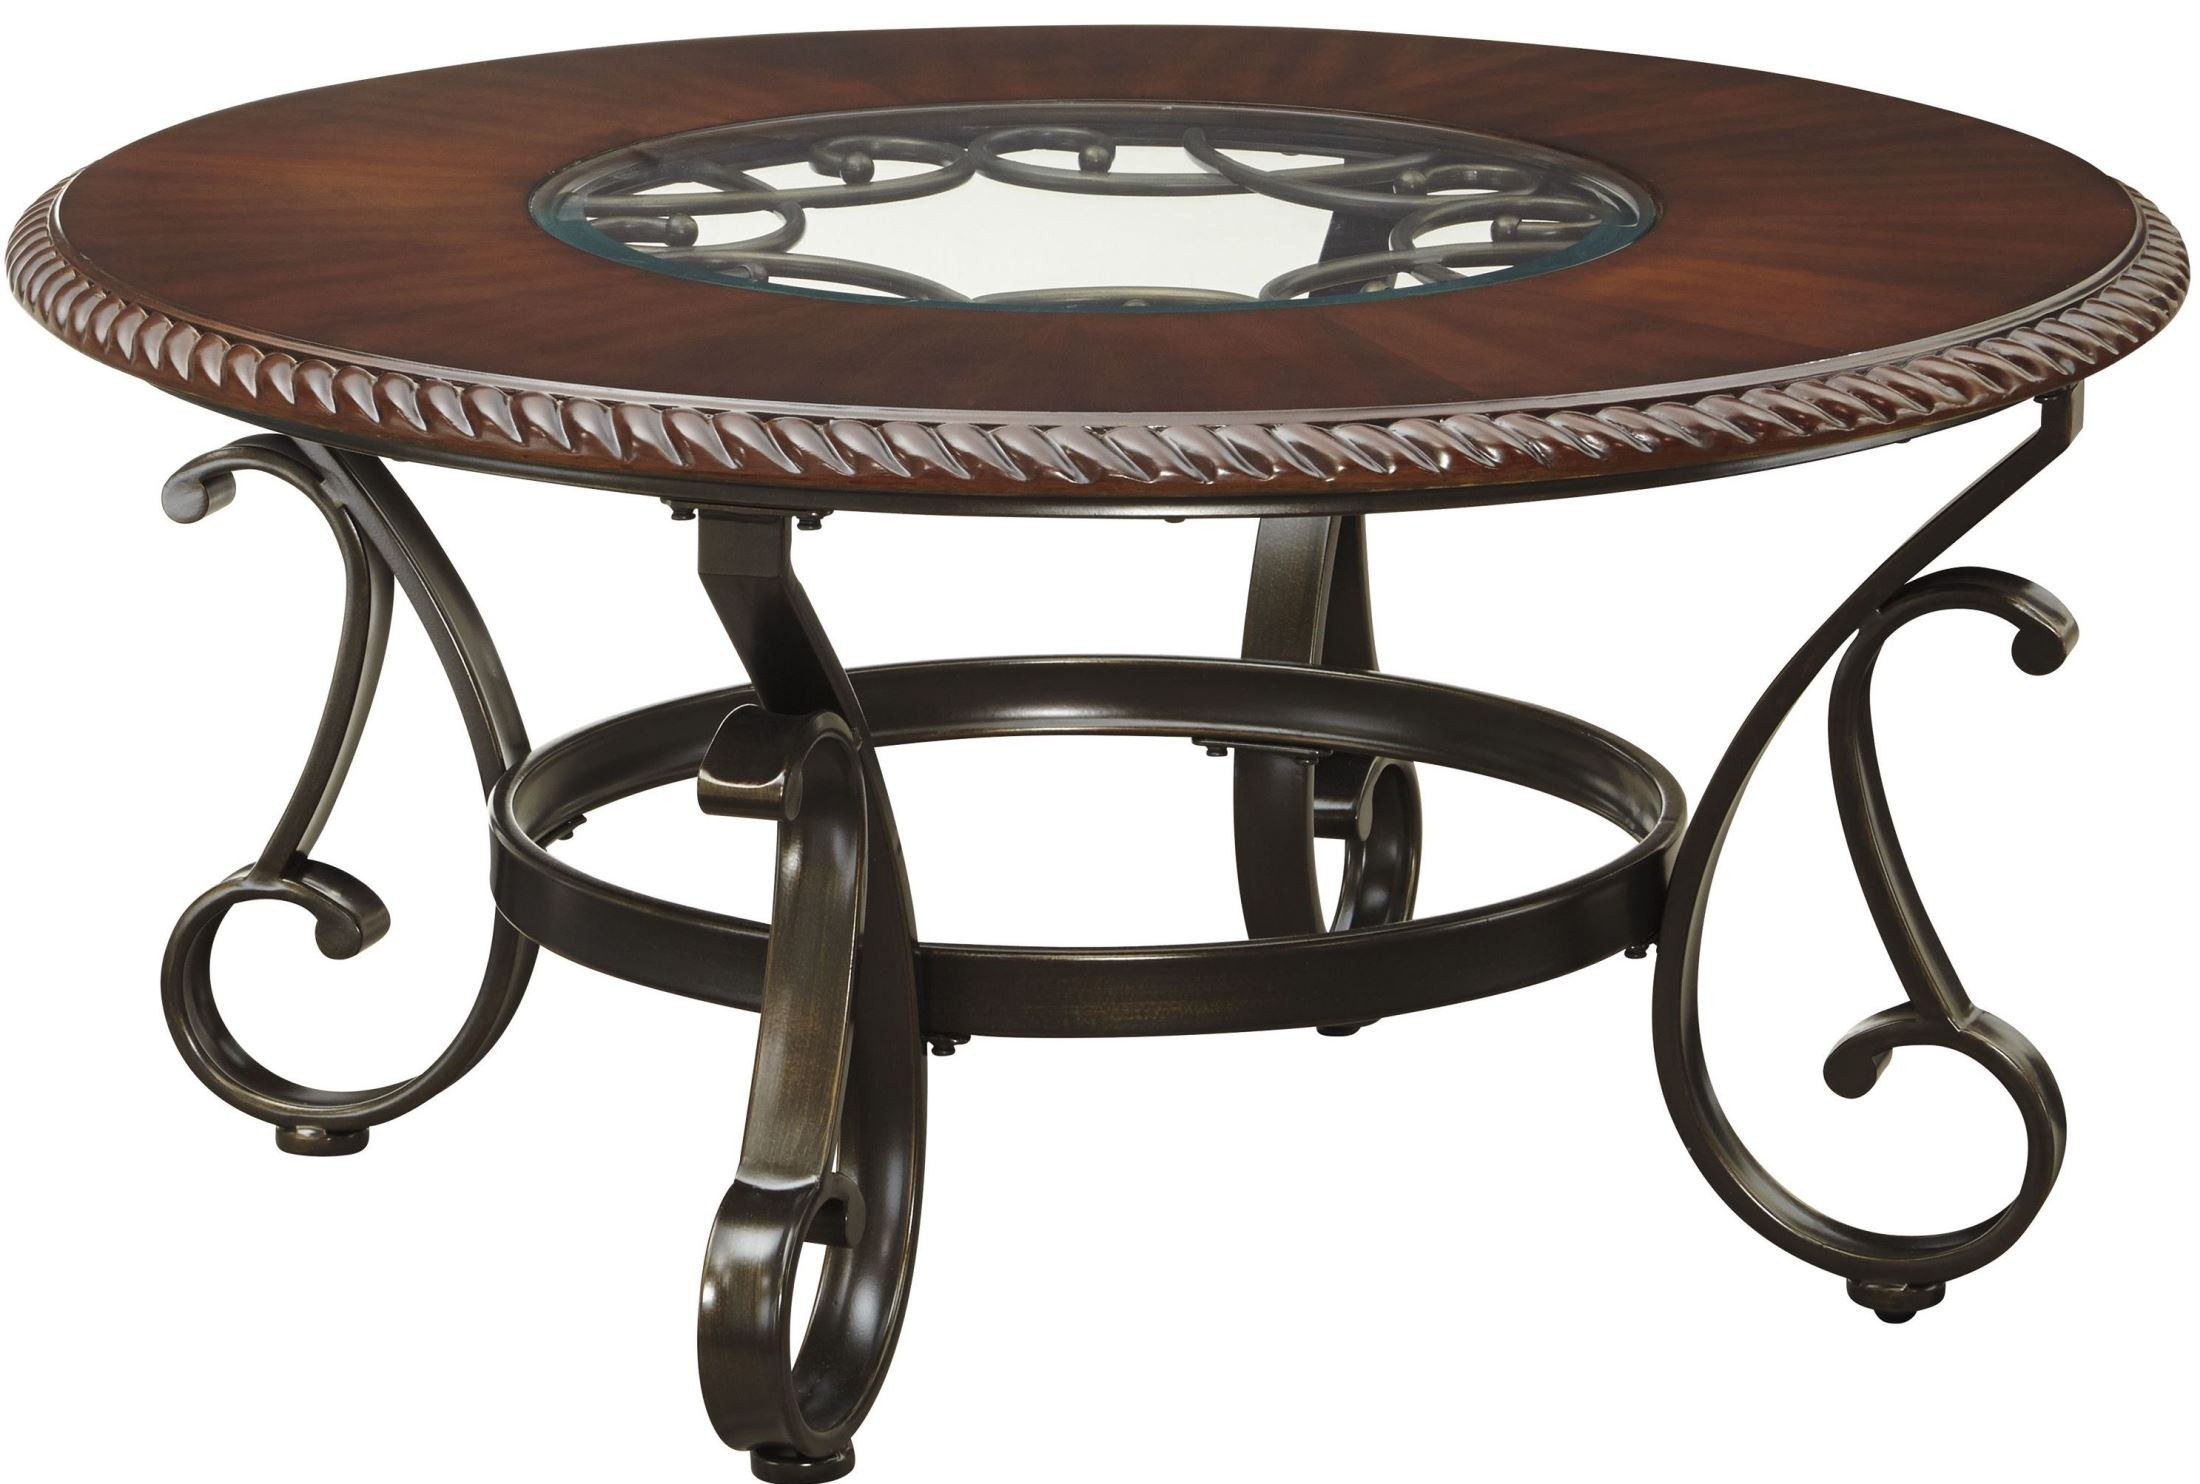 Gambrey Reddish Brown Round Cocktail Table From Ashley T626 8 Coleman Furniture